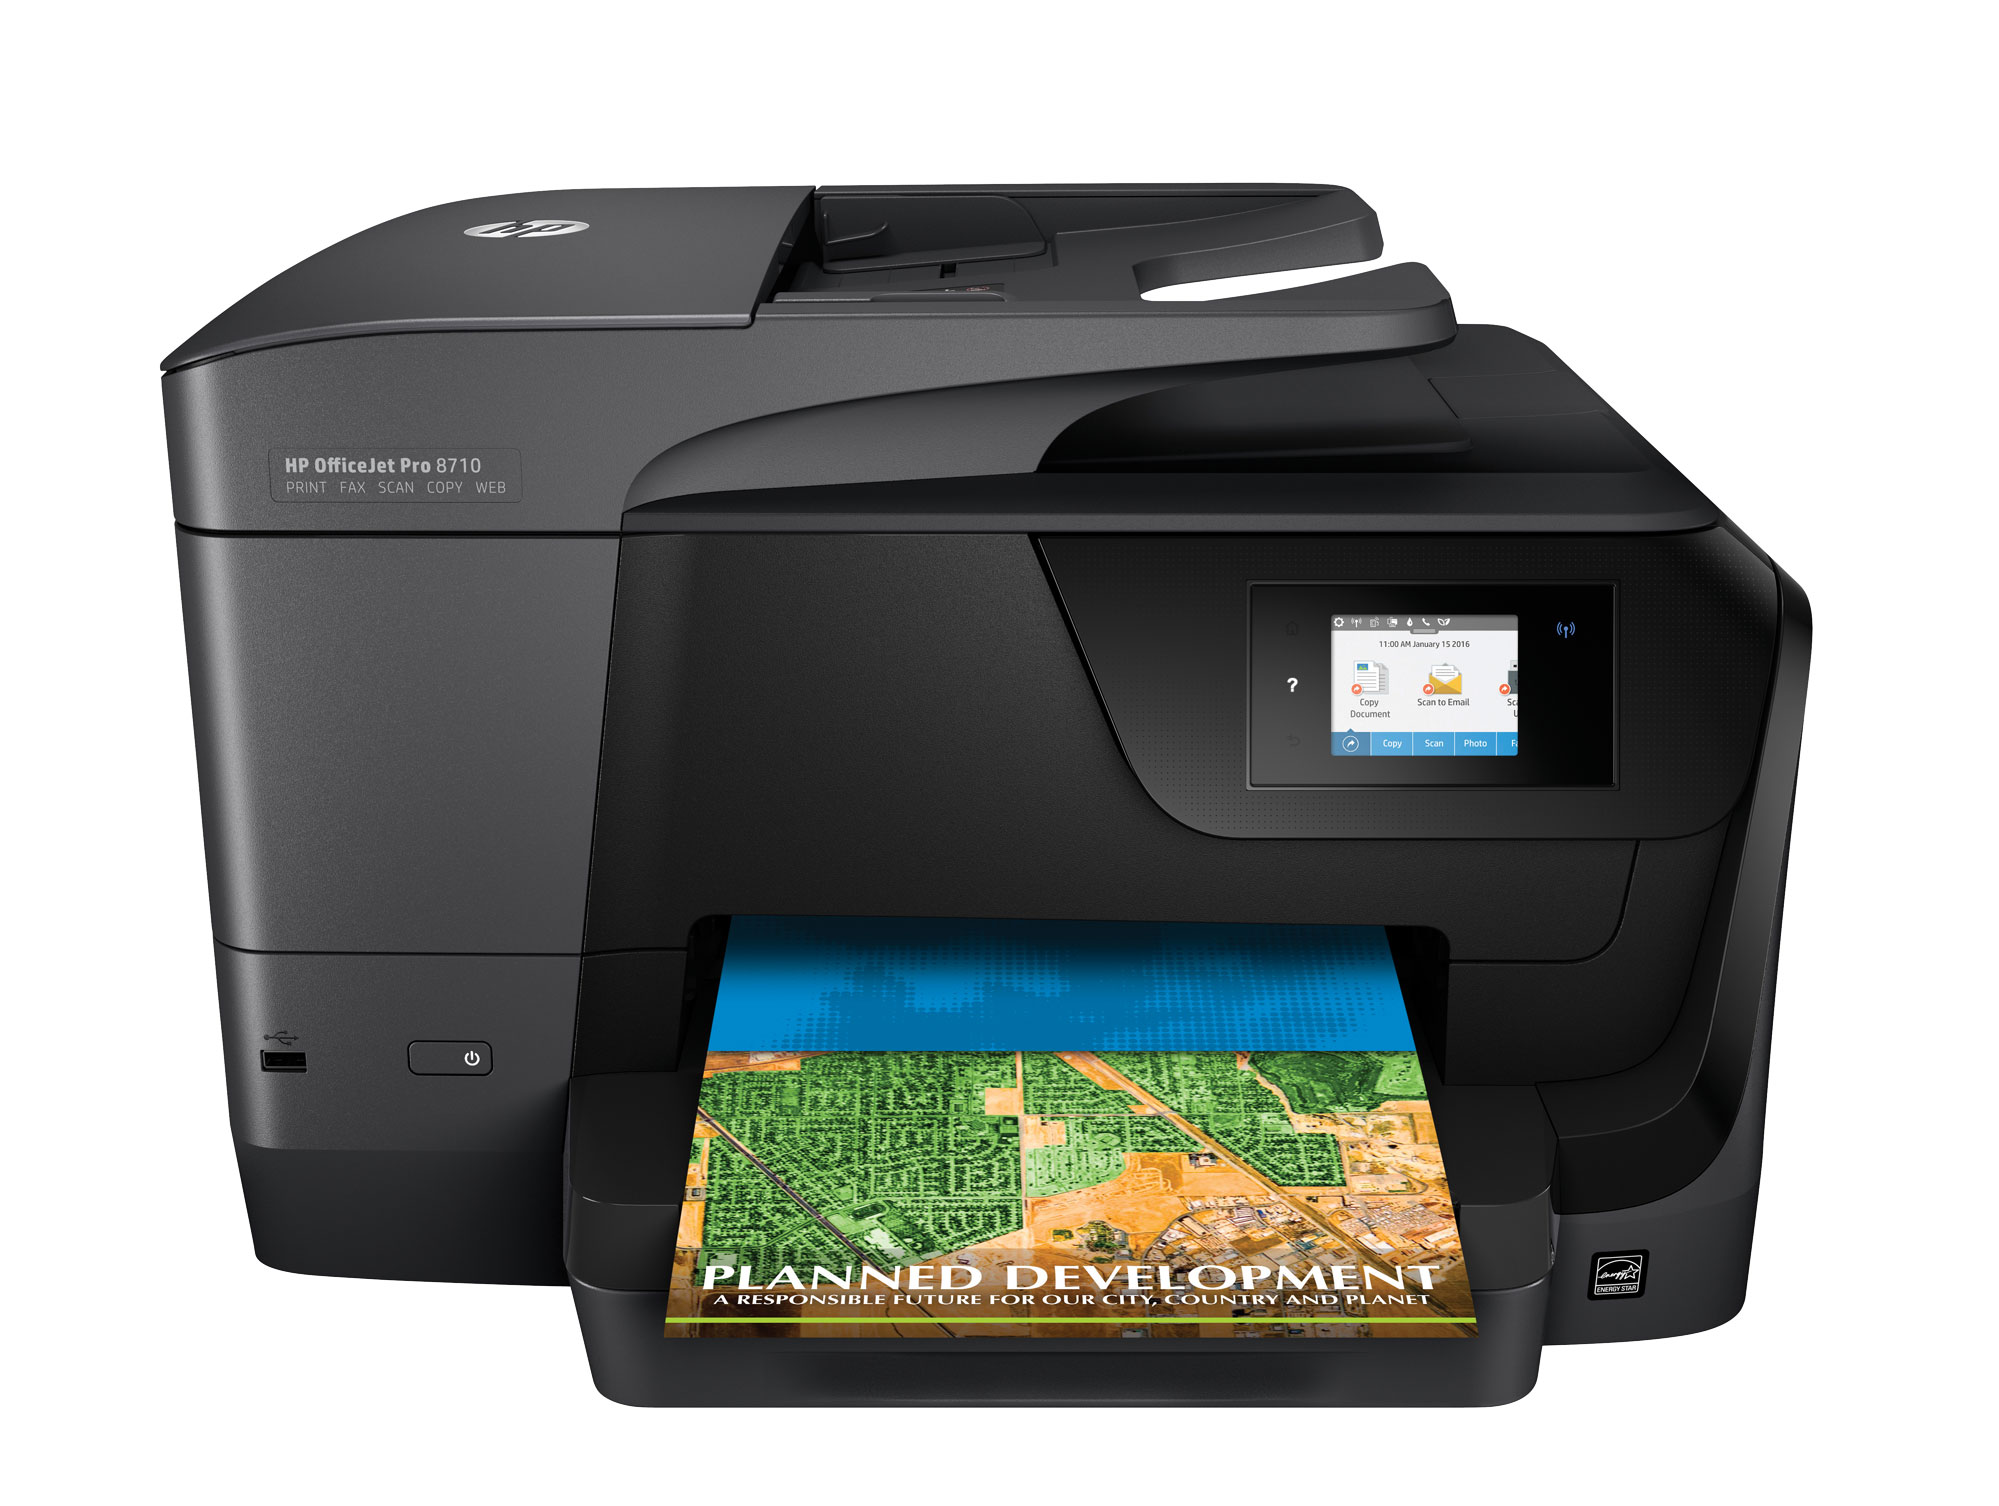 HP OfficeJet Pro 8710 [Test]